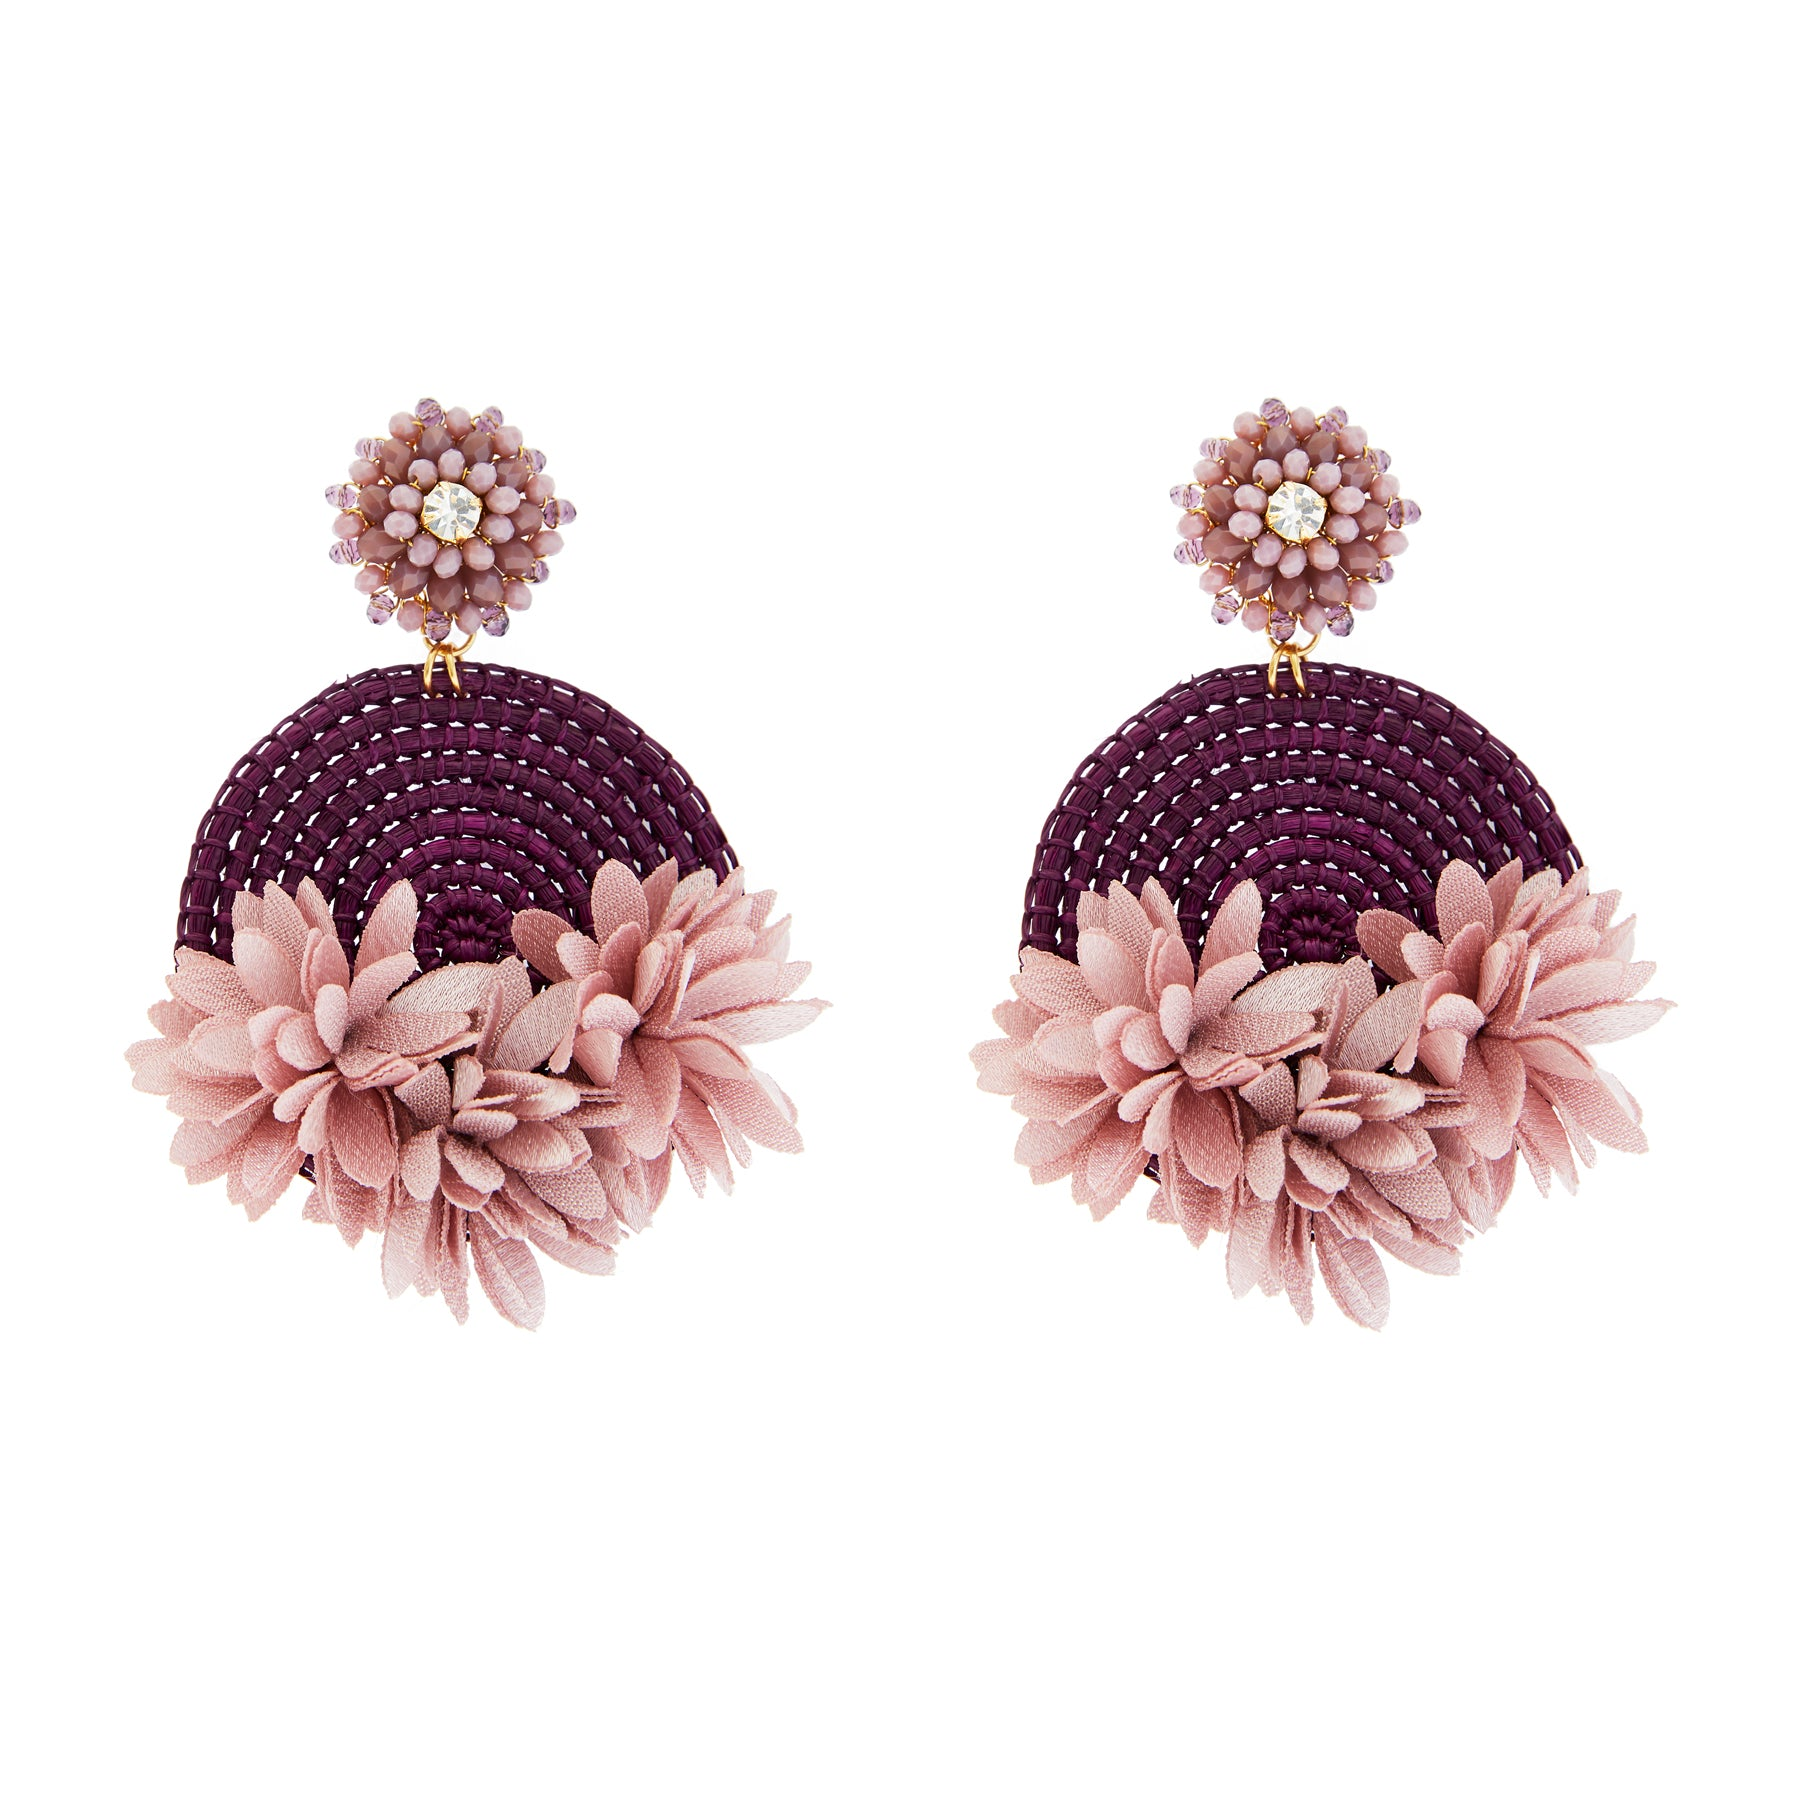 The Susie Earrings